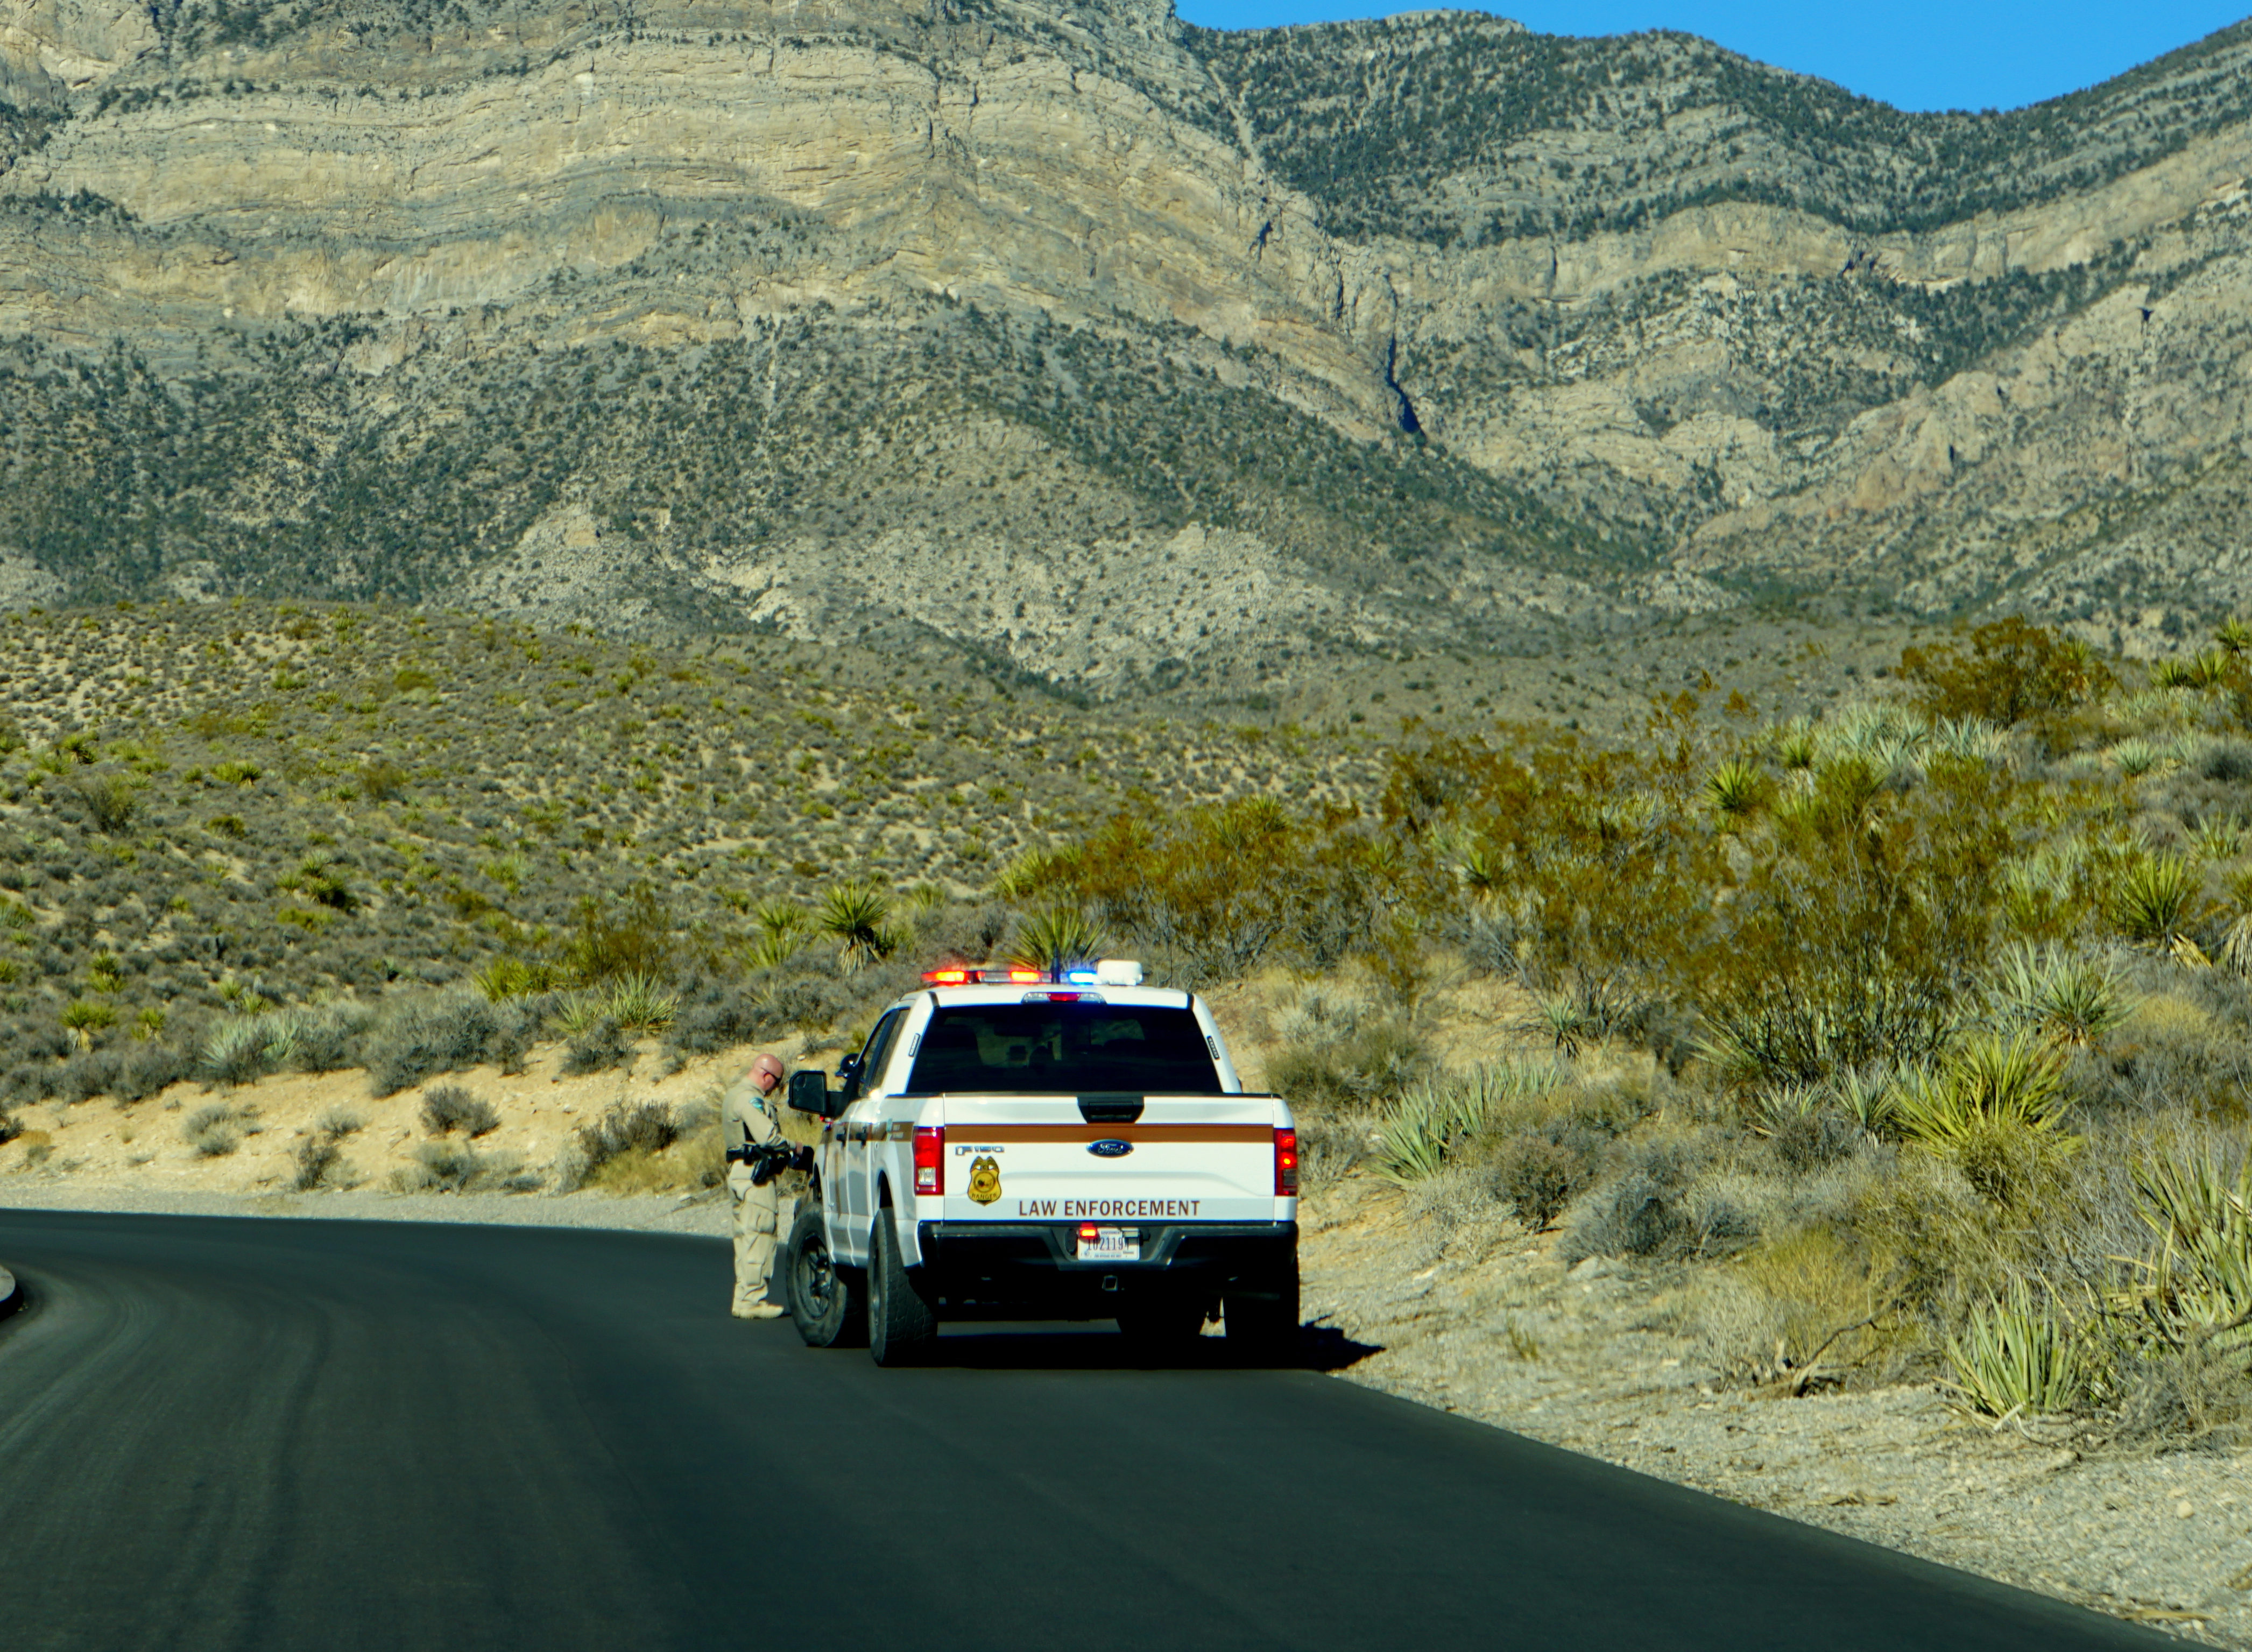 Las Vegas, Nevada, U.S.A - December 31, 2018 - Law enforcement officer patrolling the road near Red Rock Canyon National Conservation Area. Source: Shutterstock